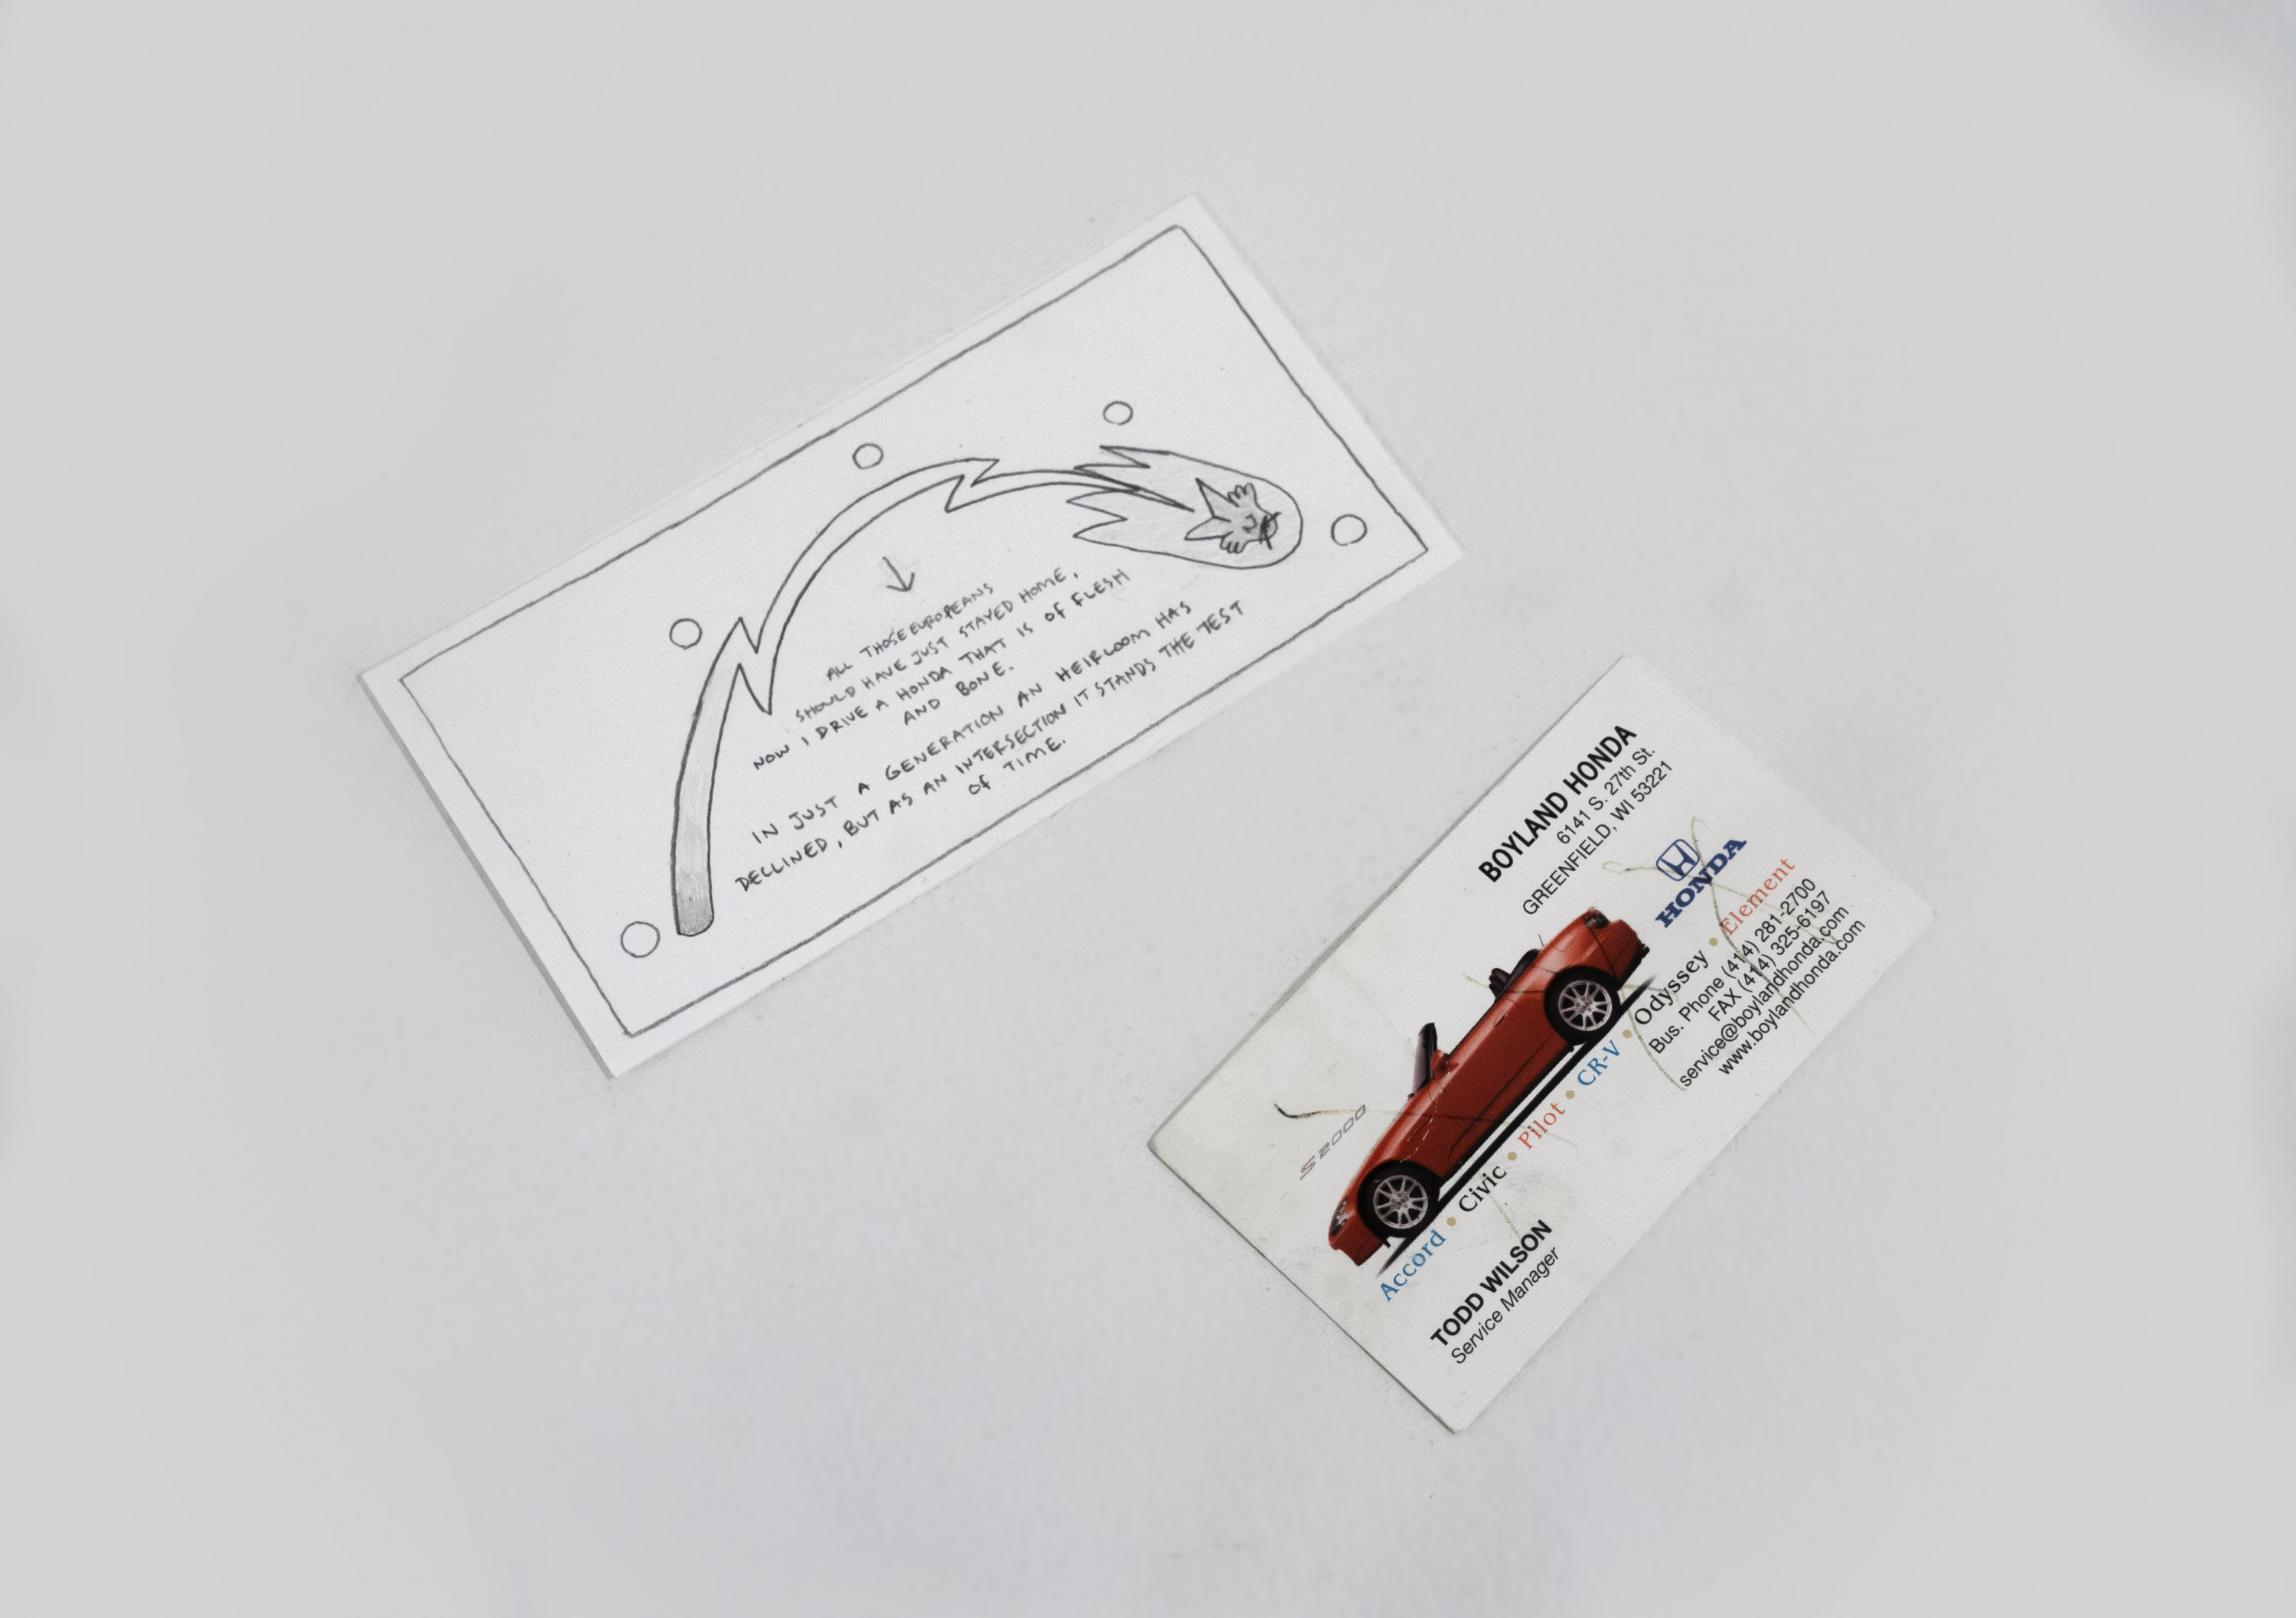 """A small hand-drawn paper card and a business card. The business card belongs to Todd Wilson, service manager at Boyland Honda. The hand-drawn card reads: """"All those Europeans should have just stayed home, now I drive a Honda that is of flesh and bone"""